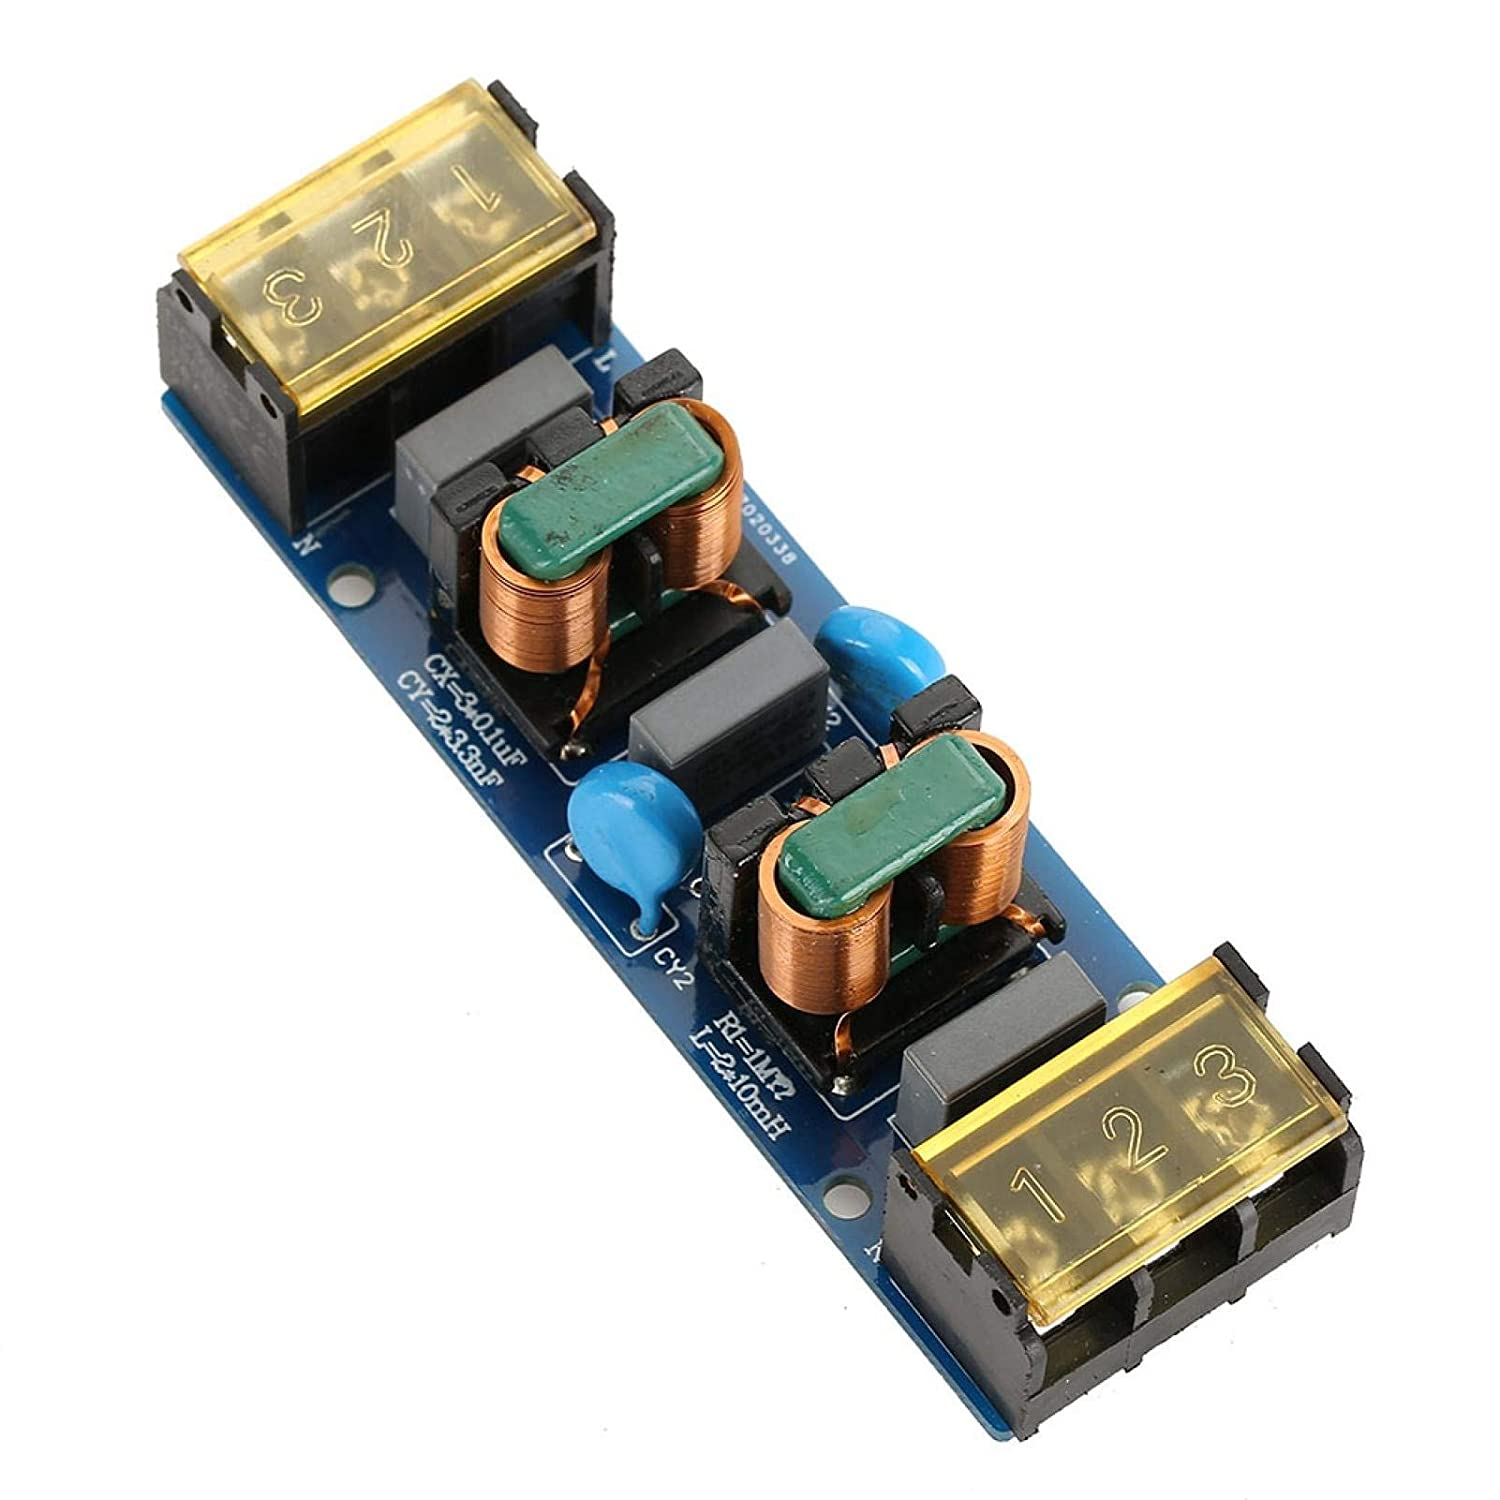 Cashiny EMI High Large-scale sale Frequency Two-Stage Filter Low-Pass Power Superior Board